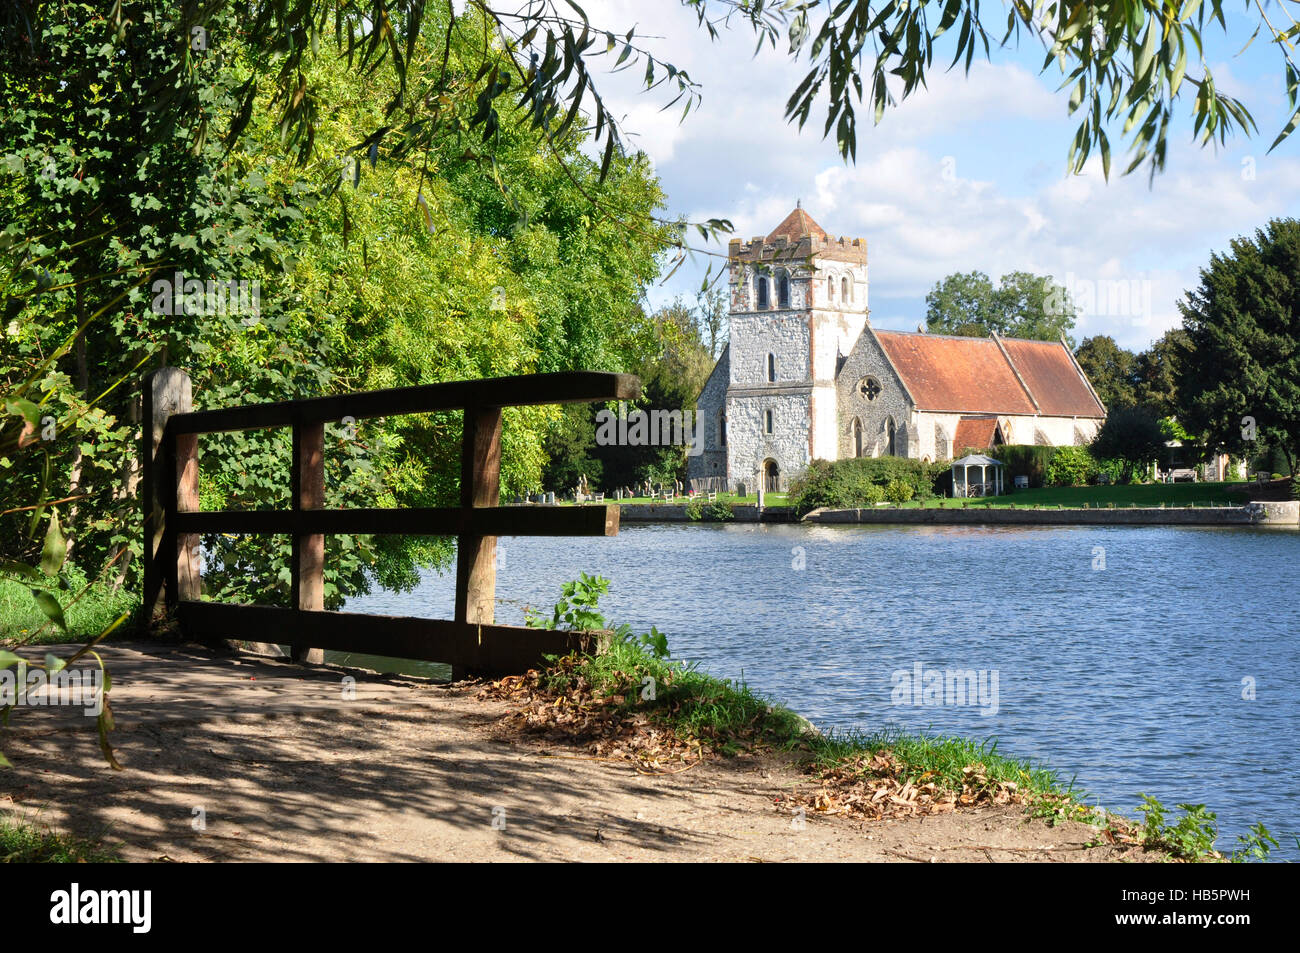 Bisham church -seen across the river from the Thames path - sunlight and shadows - an old footbridge - reflections - Stock Image